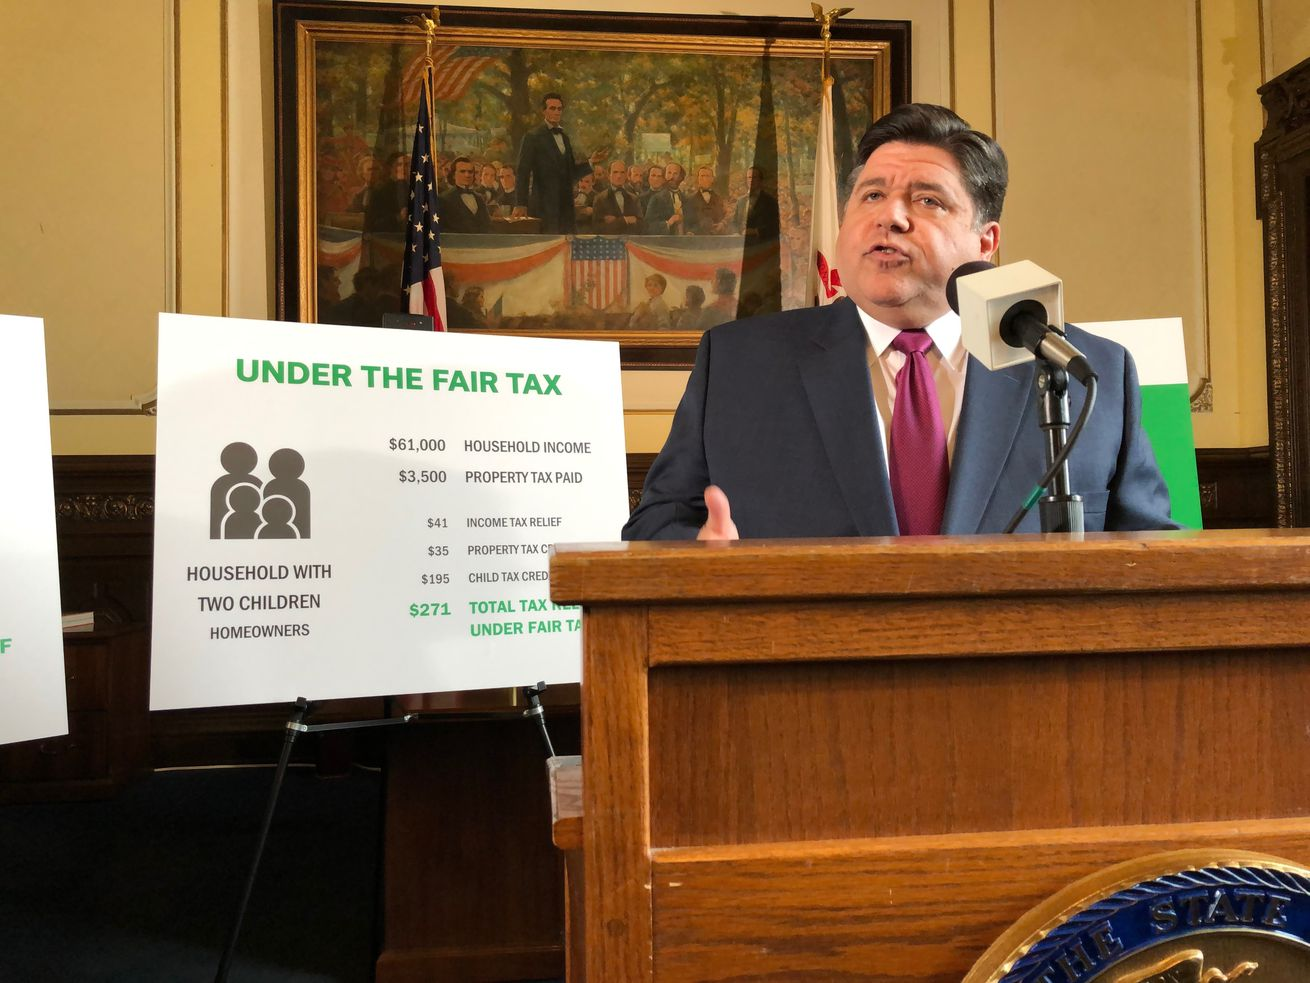 Gov. J.B. Pritzker outlines his plan to replace Illinois' flat-rate income tax with a graduated rate structure, at a news conference on March 7, 2019 in Springfield.